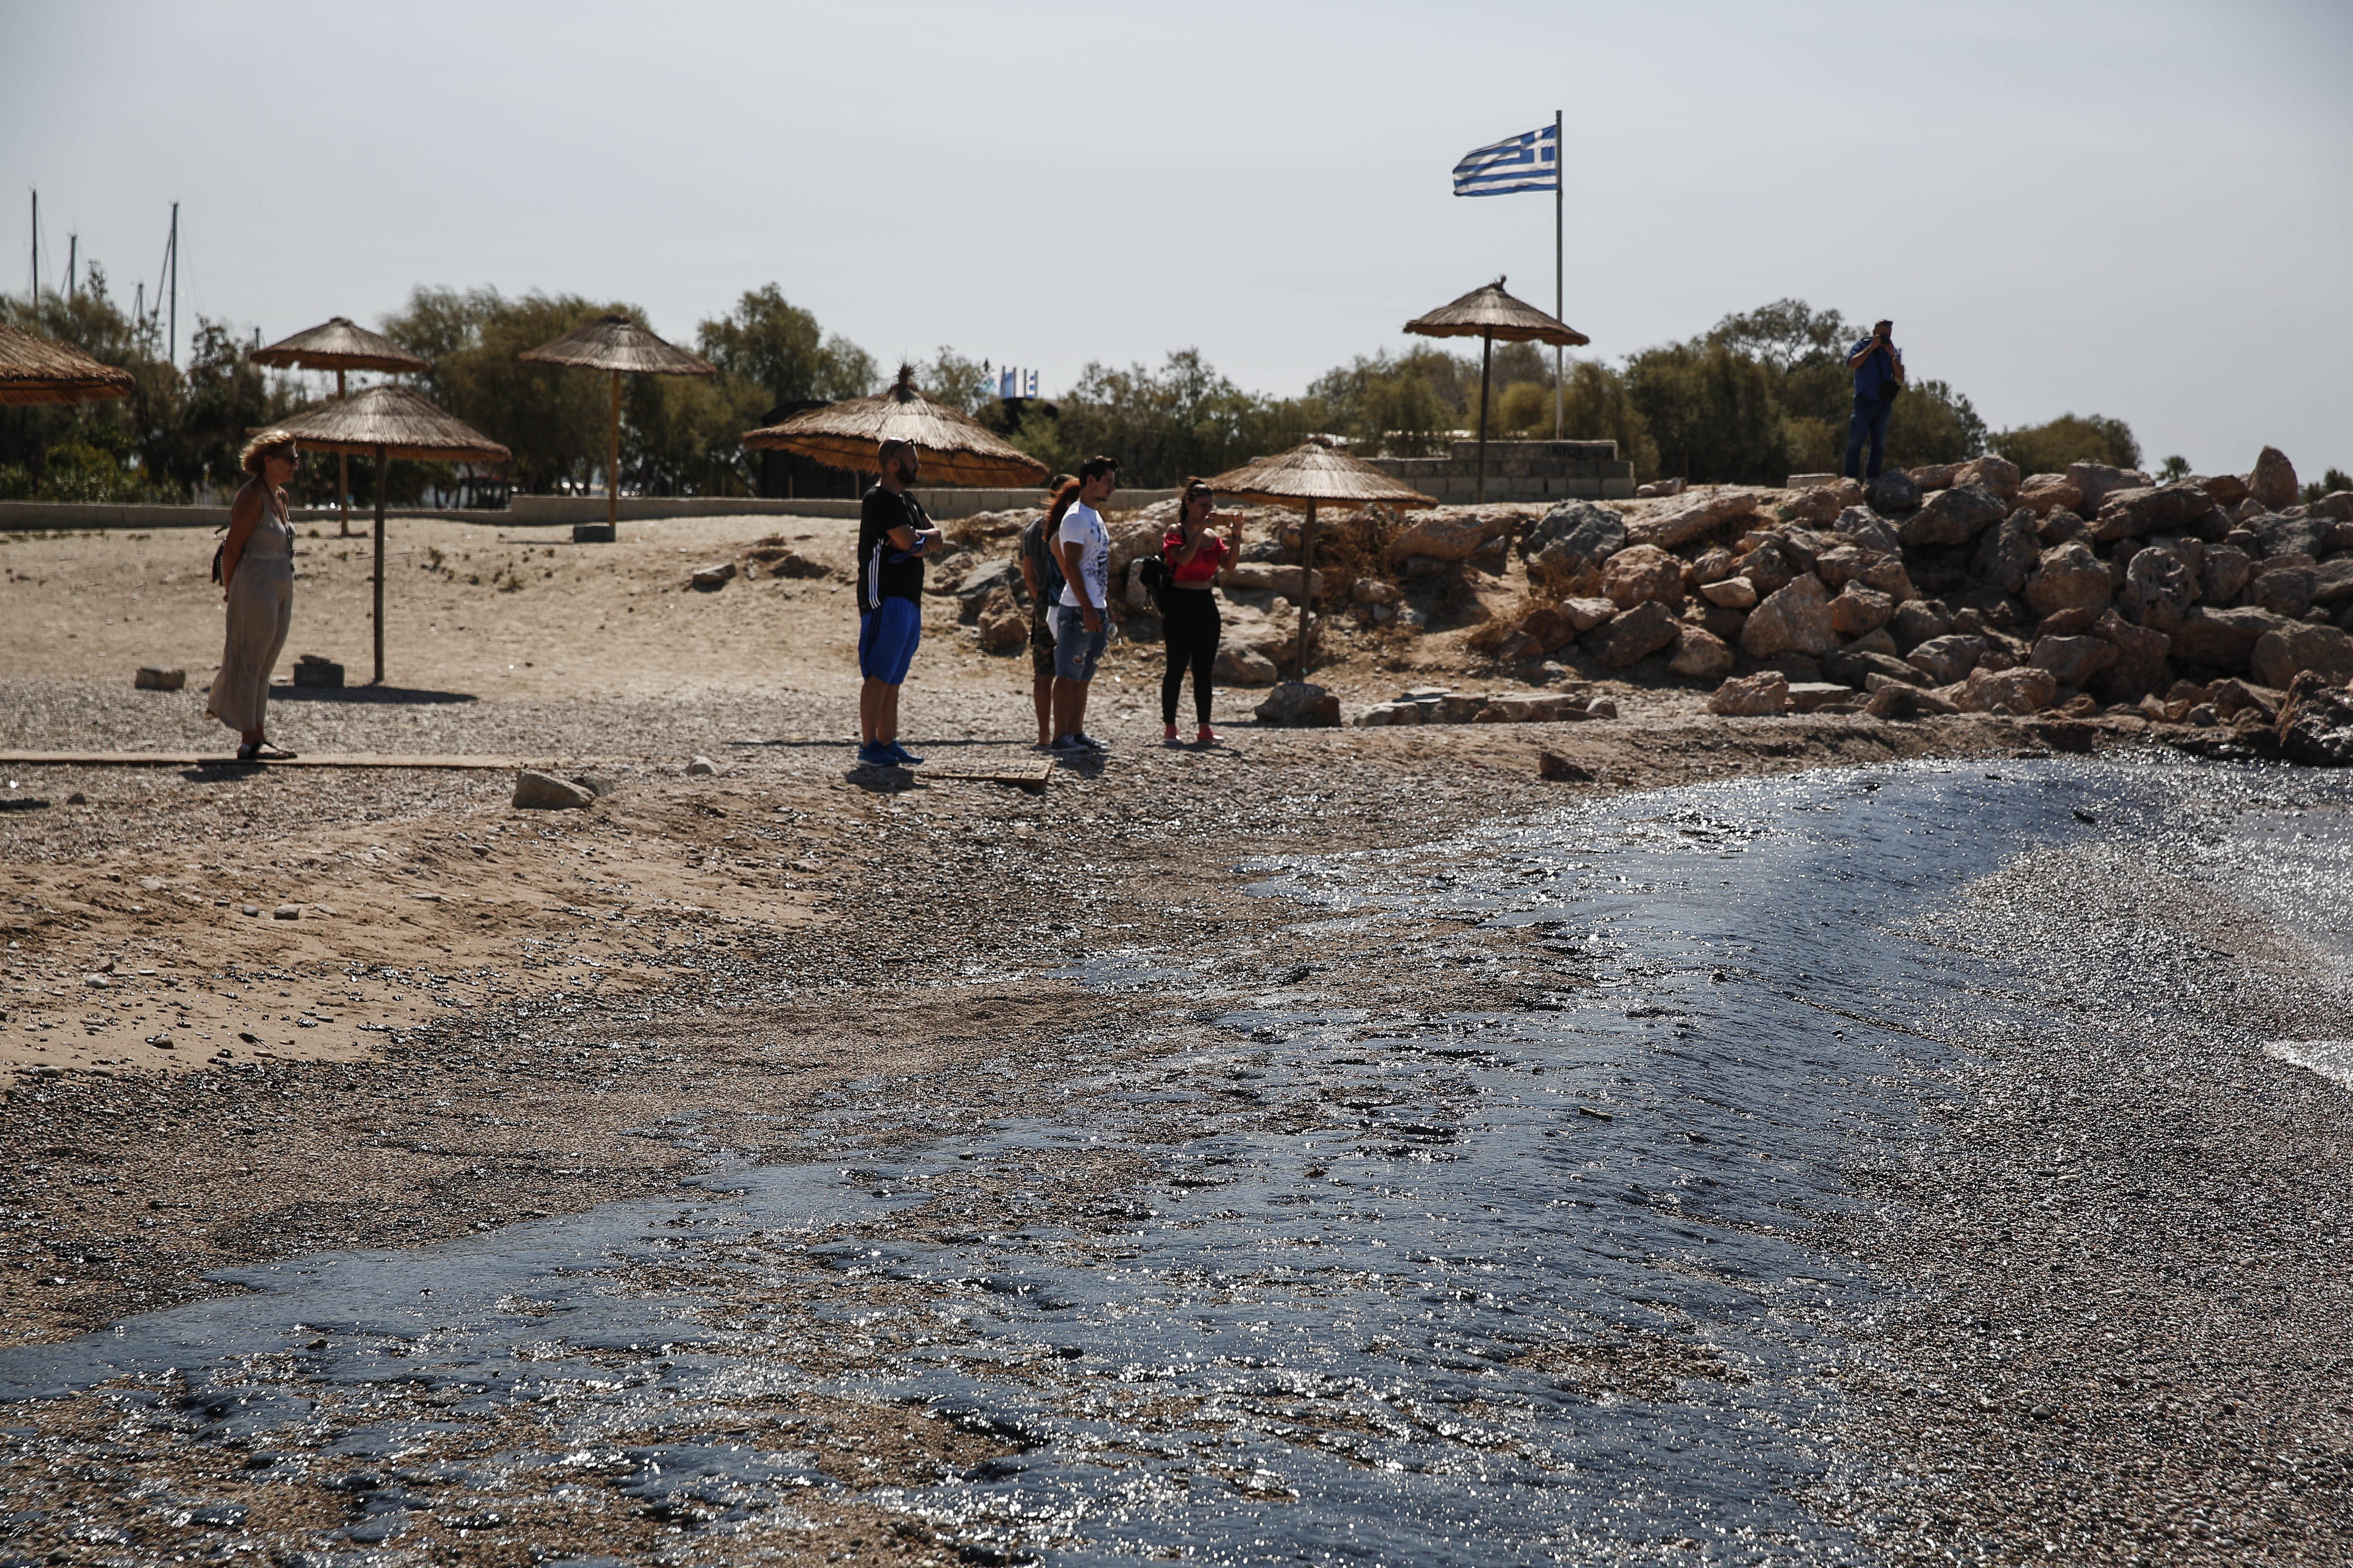 Greece Oli Spill-8 People stand on a beach where an oil spillage has been washed-up at Glyfada suburb, near Athens, on Thursday,Sept. 14, 2017. Greek authorities insist they are doing everything they can to clean up pollution caused by an oil spill following the sinking of a small oil tanker that has left large sections of the Greek capital's coastal areas coated in viscous, foul-smelling oil. (AP Photo/Yorgos Karahalis)